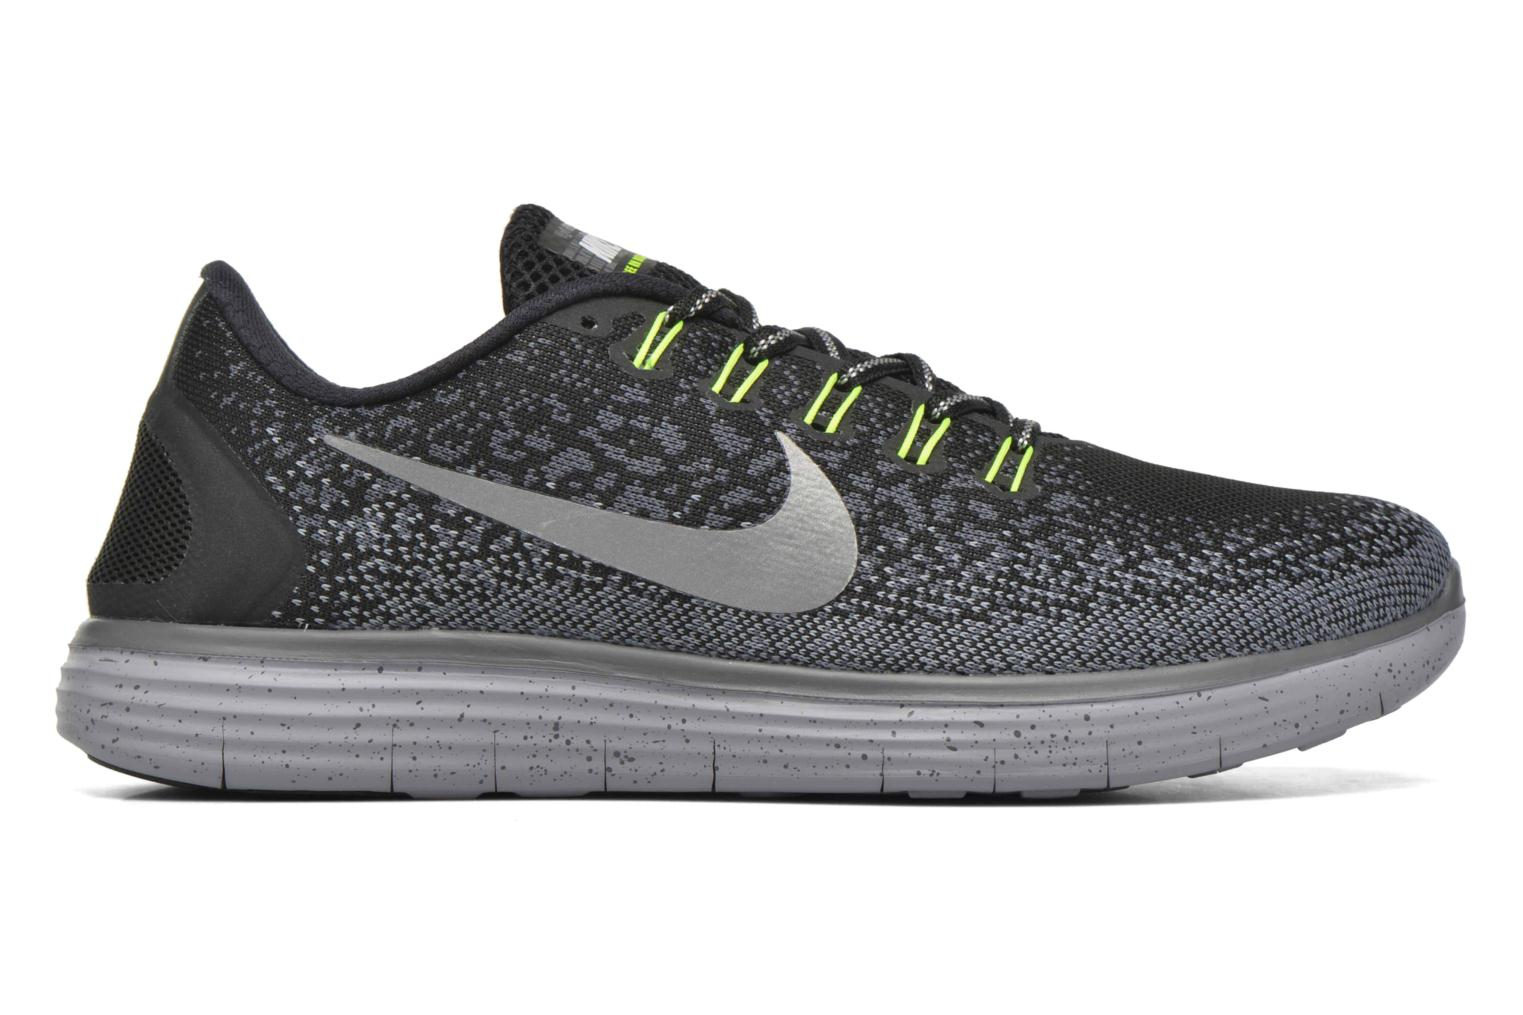 Nike Free Rn Distance Shield Black/Metallic Silver-Dark Grey-Stealth